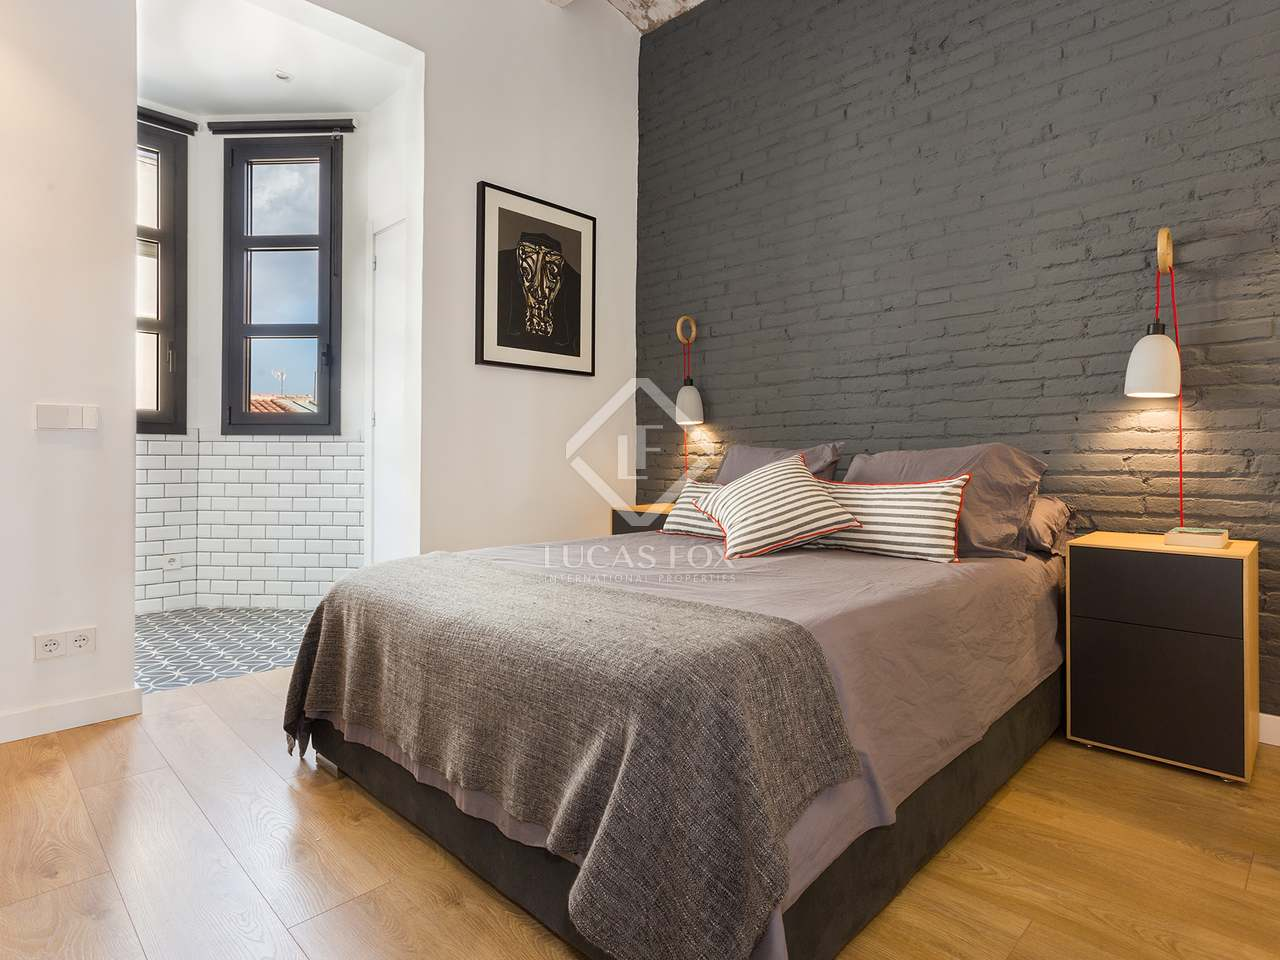 79 M Apartment For Sale In Gracia Barcelona